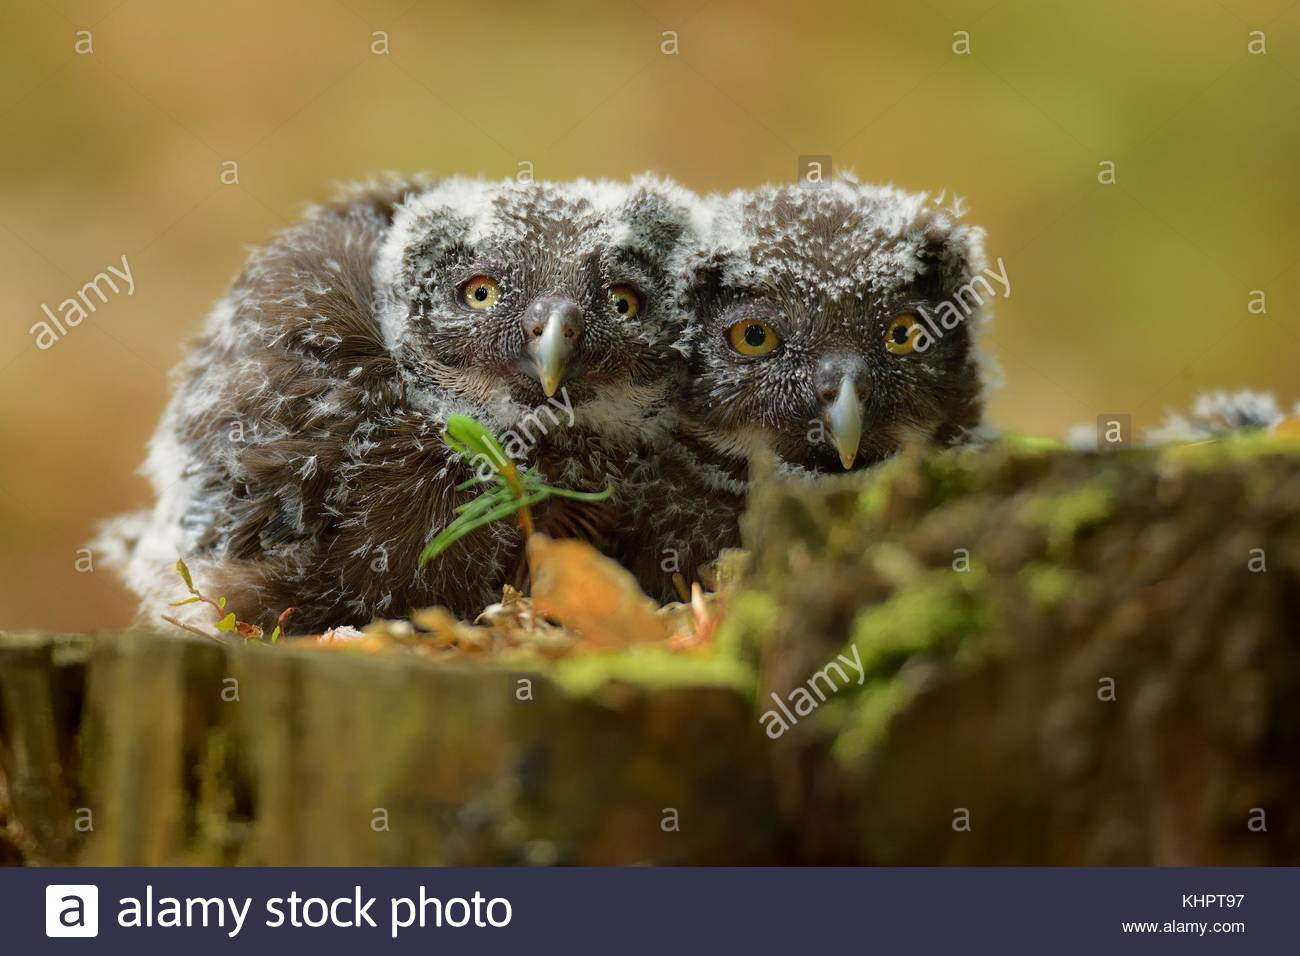 Aegolius funereus - Boreal Owl - nestling (young birds) on the tree stump - Stock Image